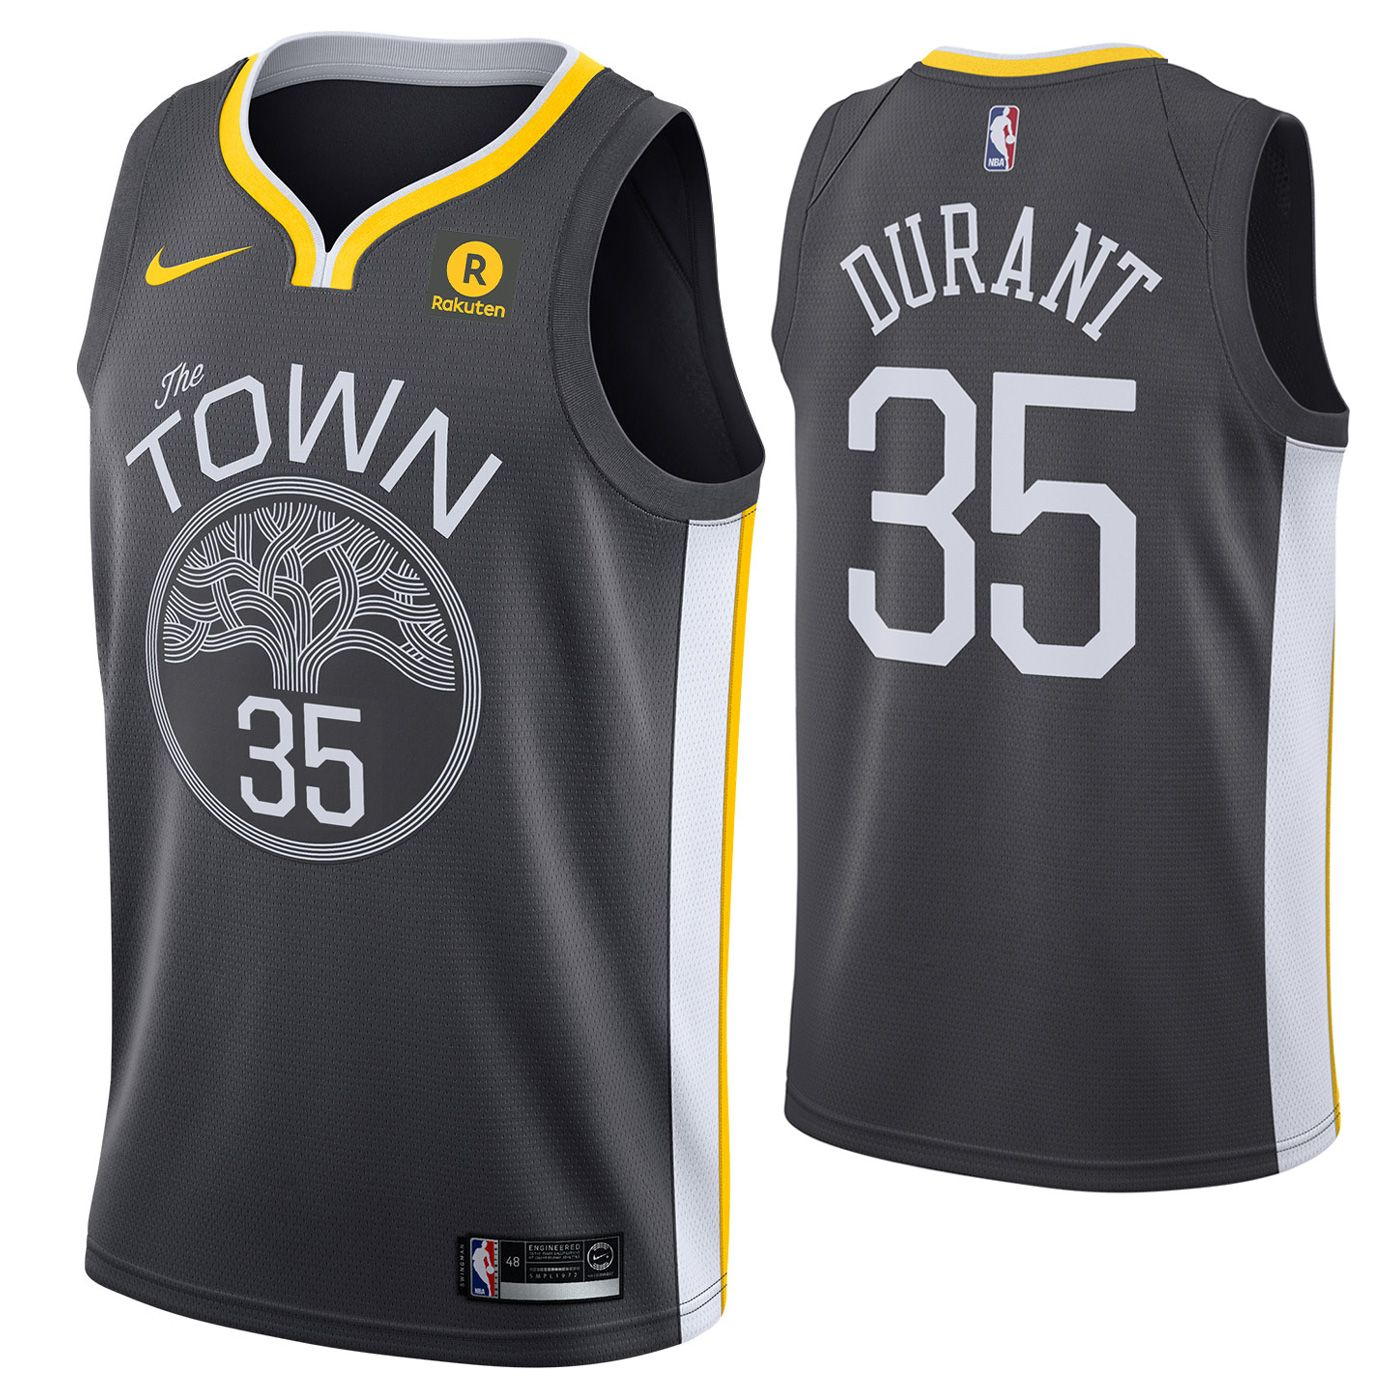 buy online 5acd6 b8247 Golden State Warriors Nike Dri-FIT Men's Kevin Durant #35 ...